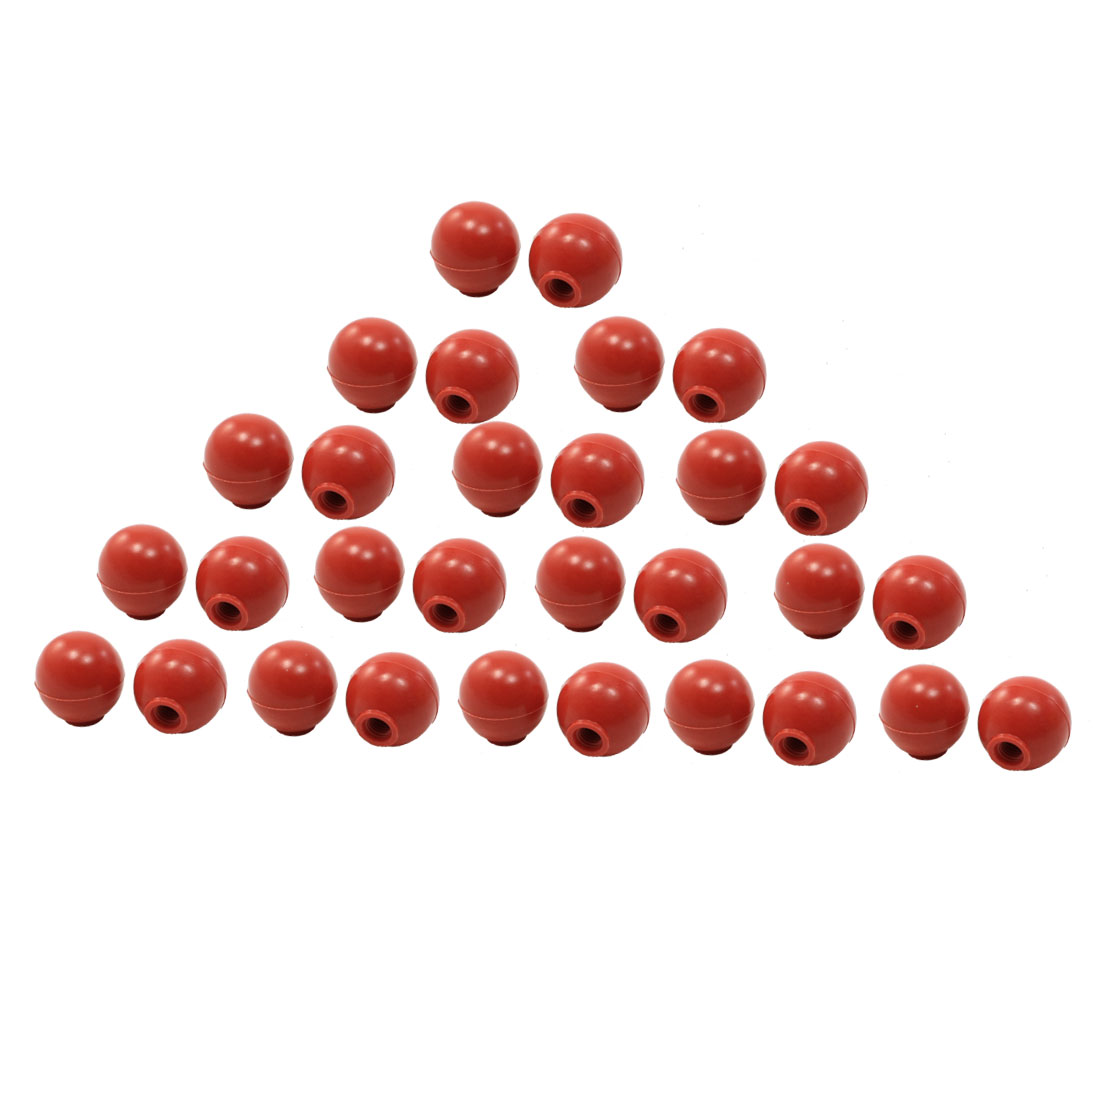 30 Pcs Machine Control Handle Threaded Ball Knob Red 38mm Dia 10mm Hole